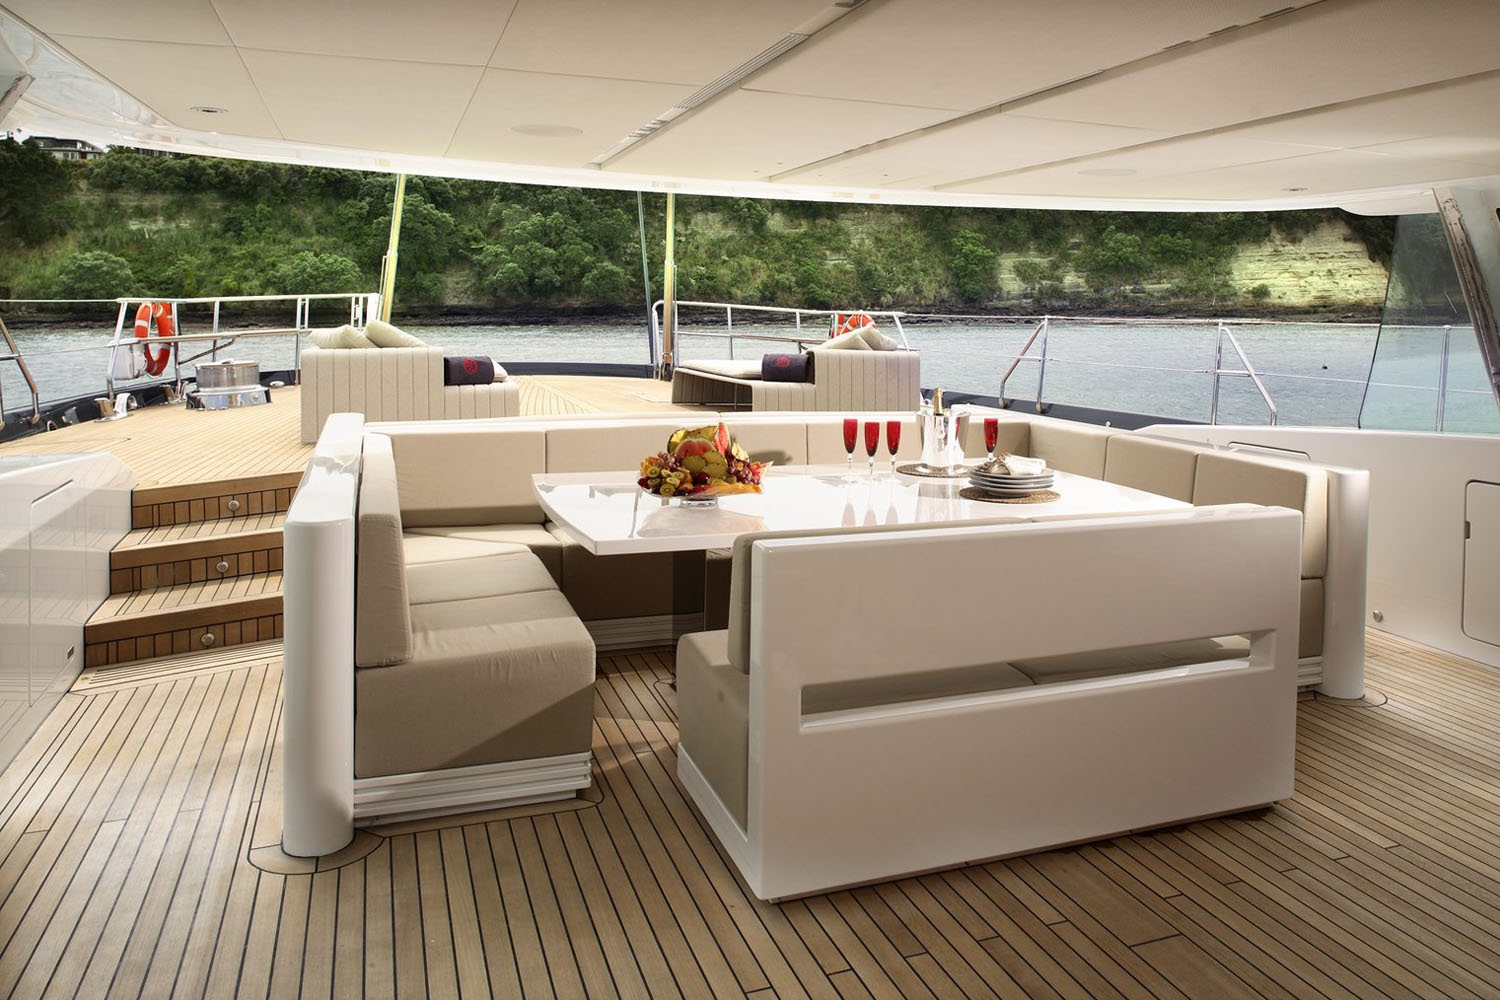 The luxury sailing yachts guest accommodation provides for an owners suite and three guest